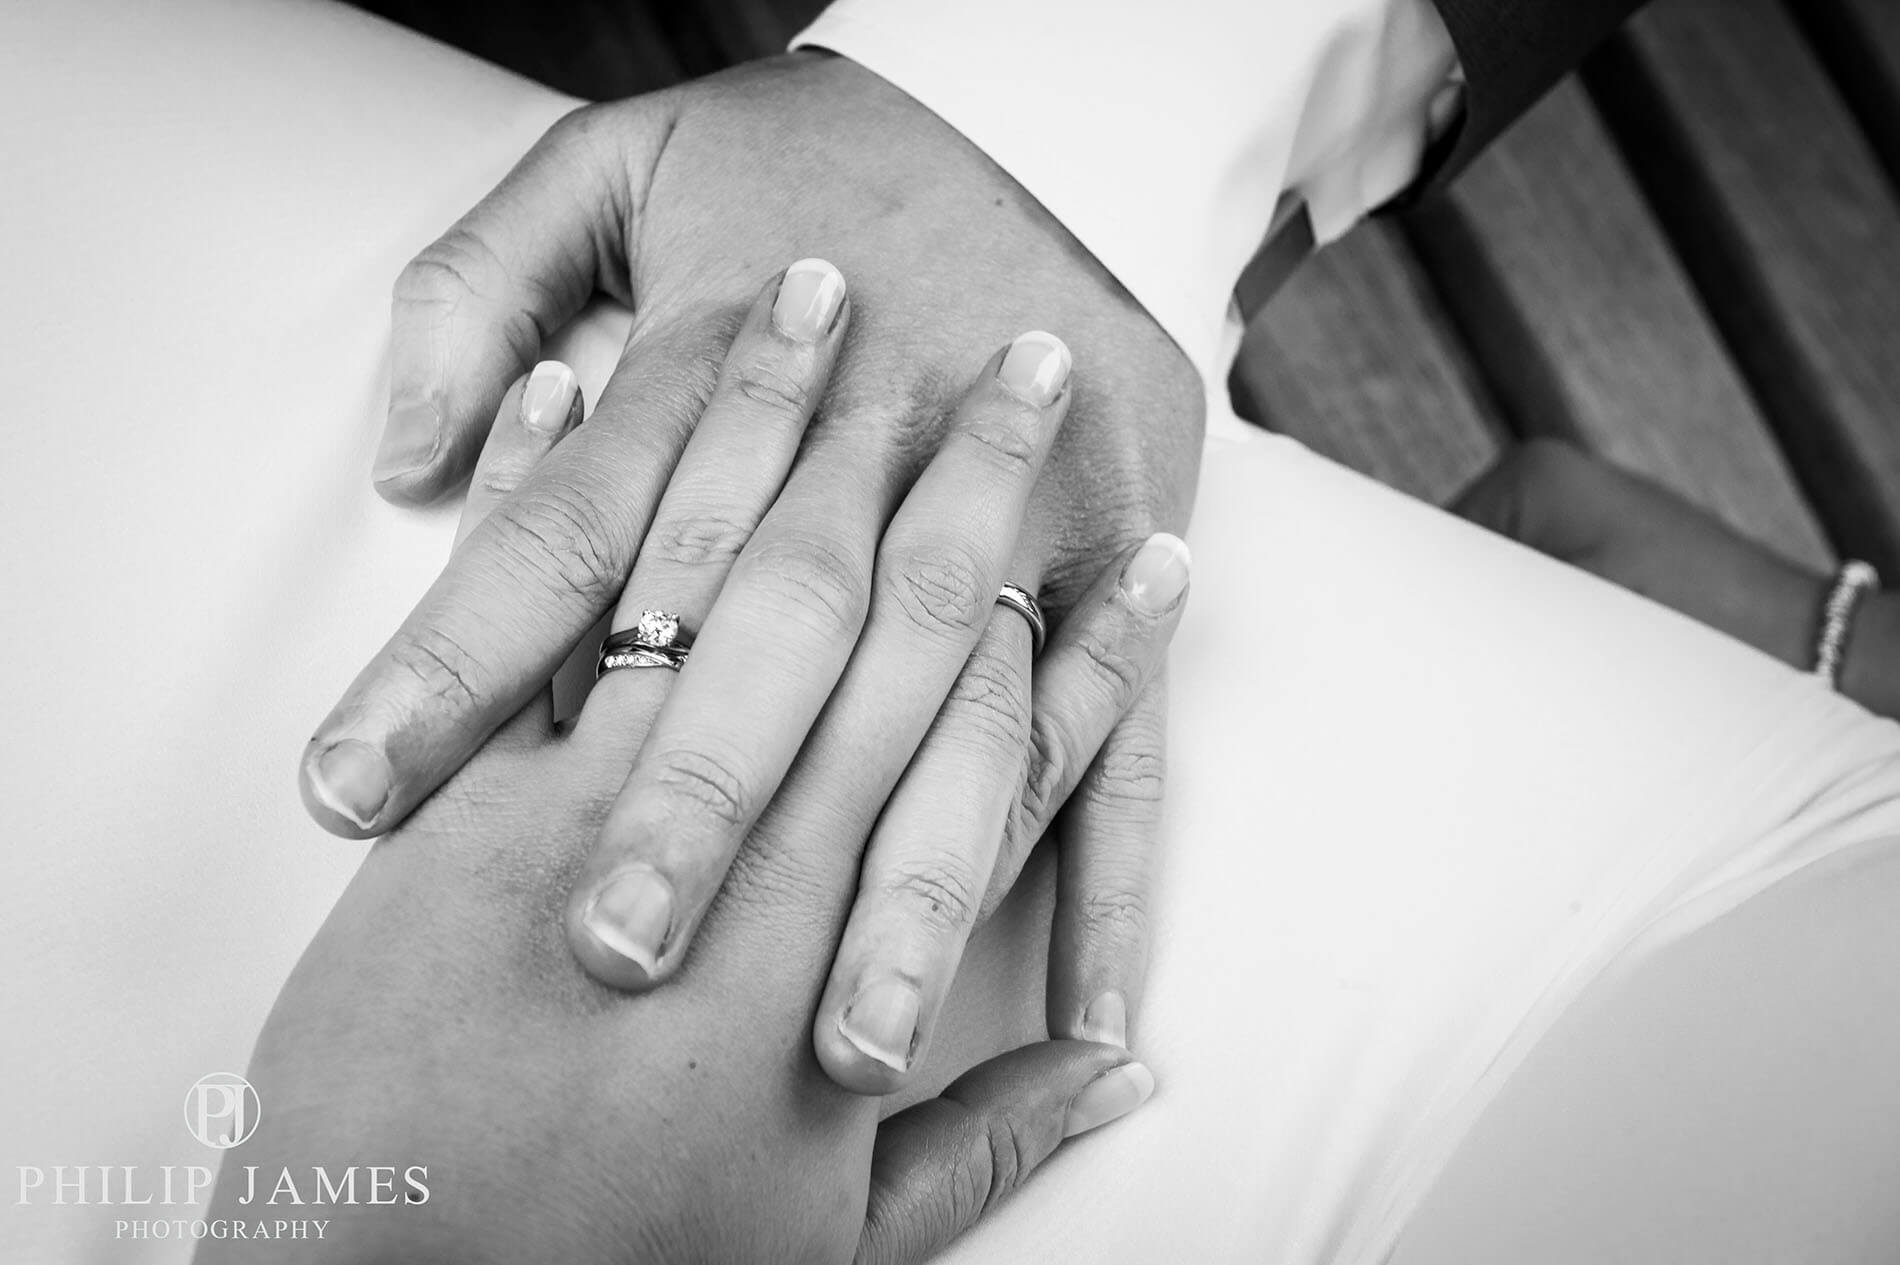 Philip James specializing in Wedding Photography Birmingham - Details (3 of 54)